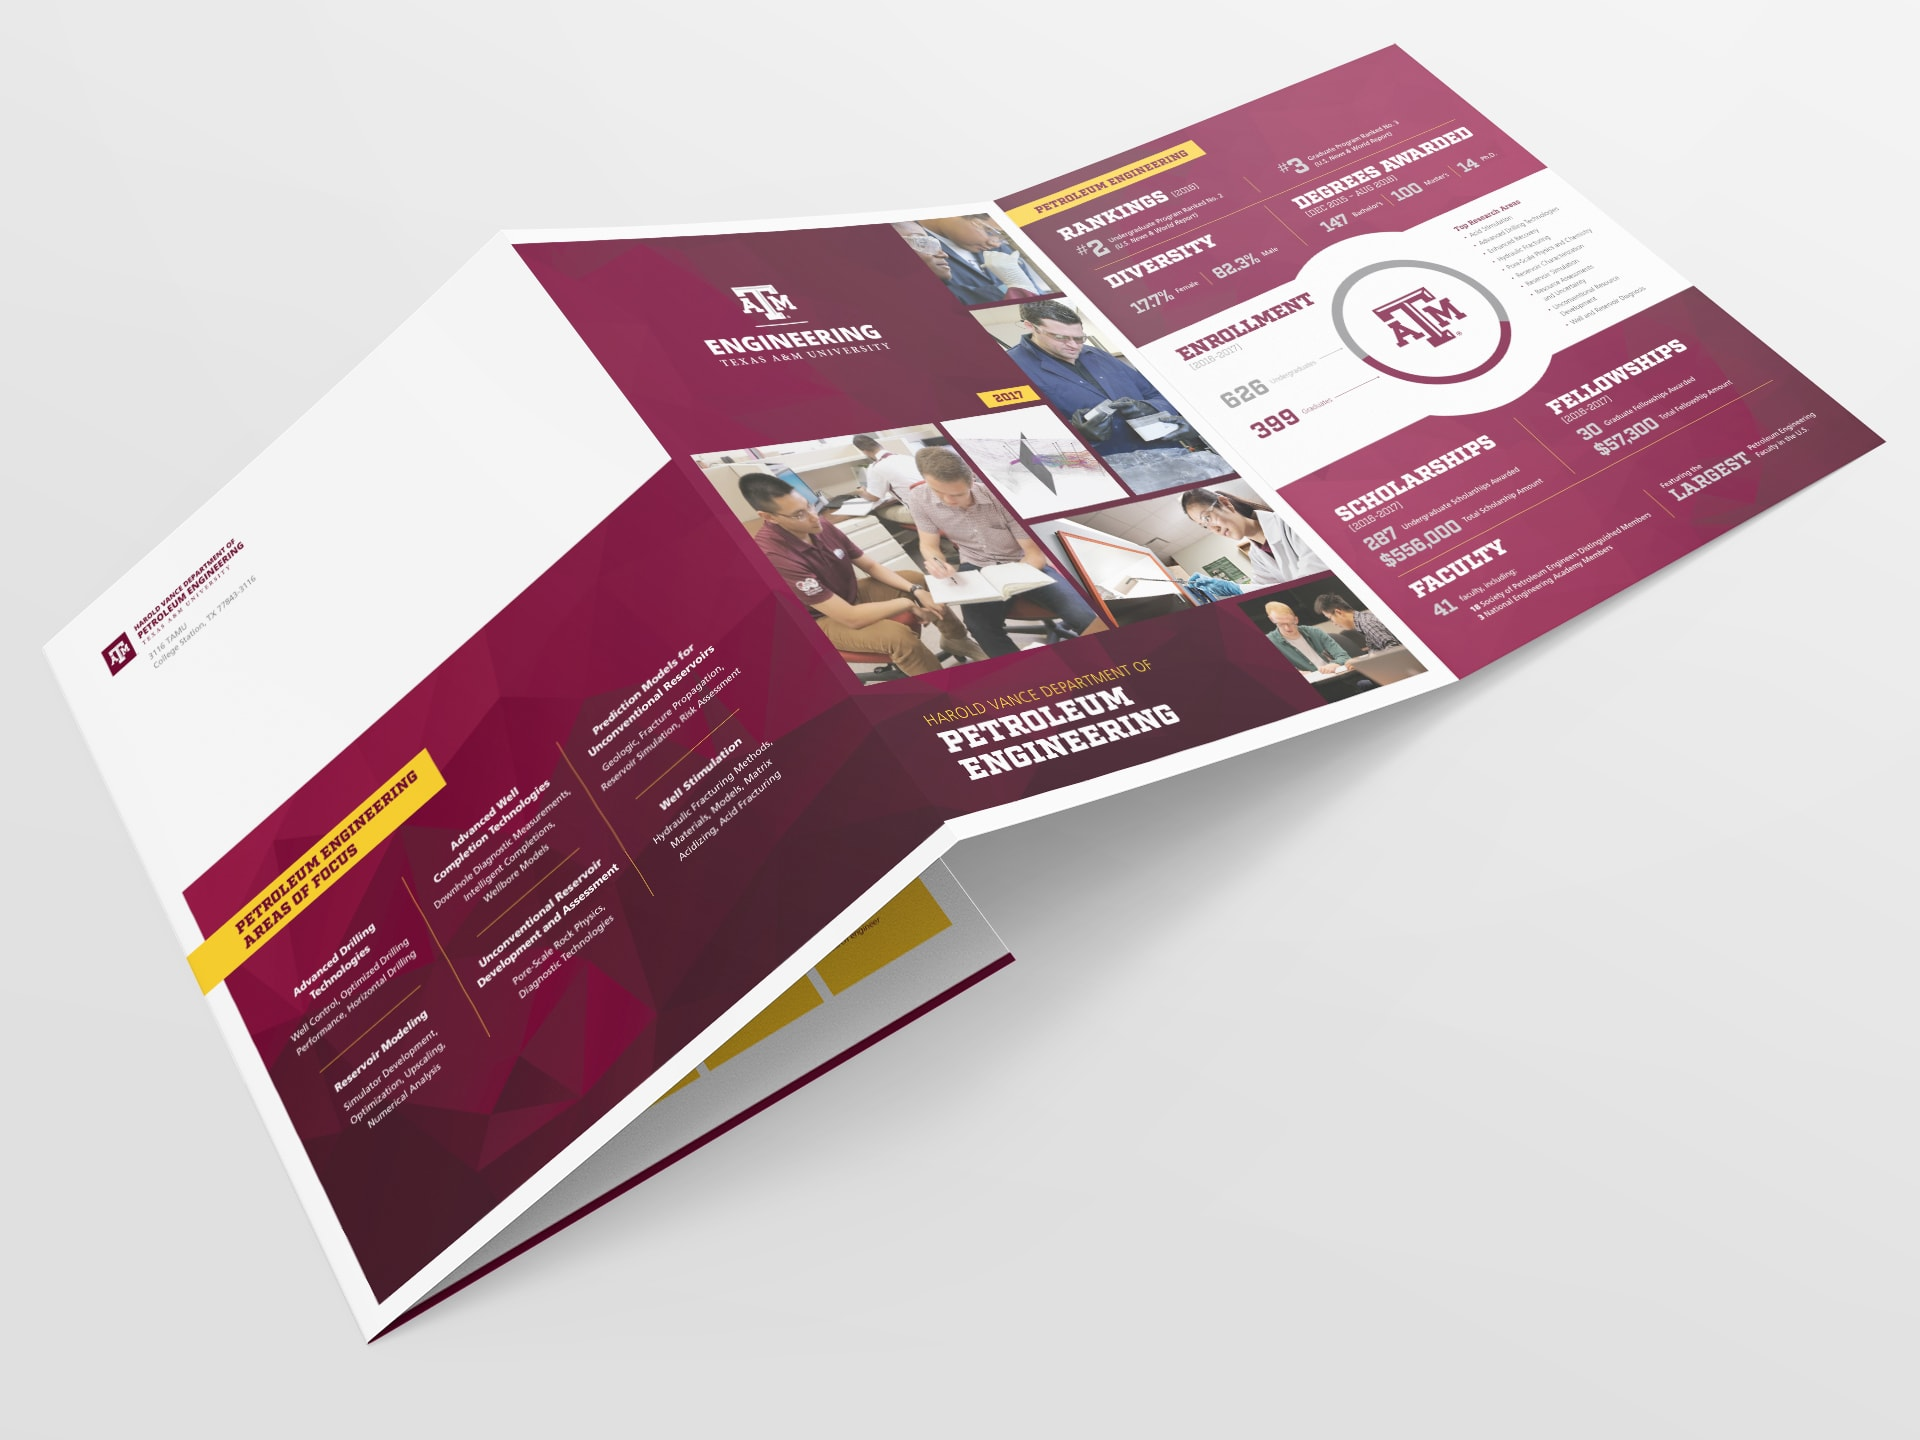 Department brochure front and back cover with fold panel